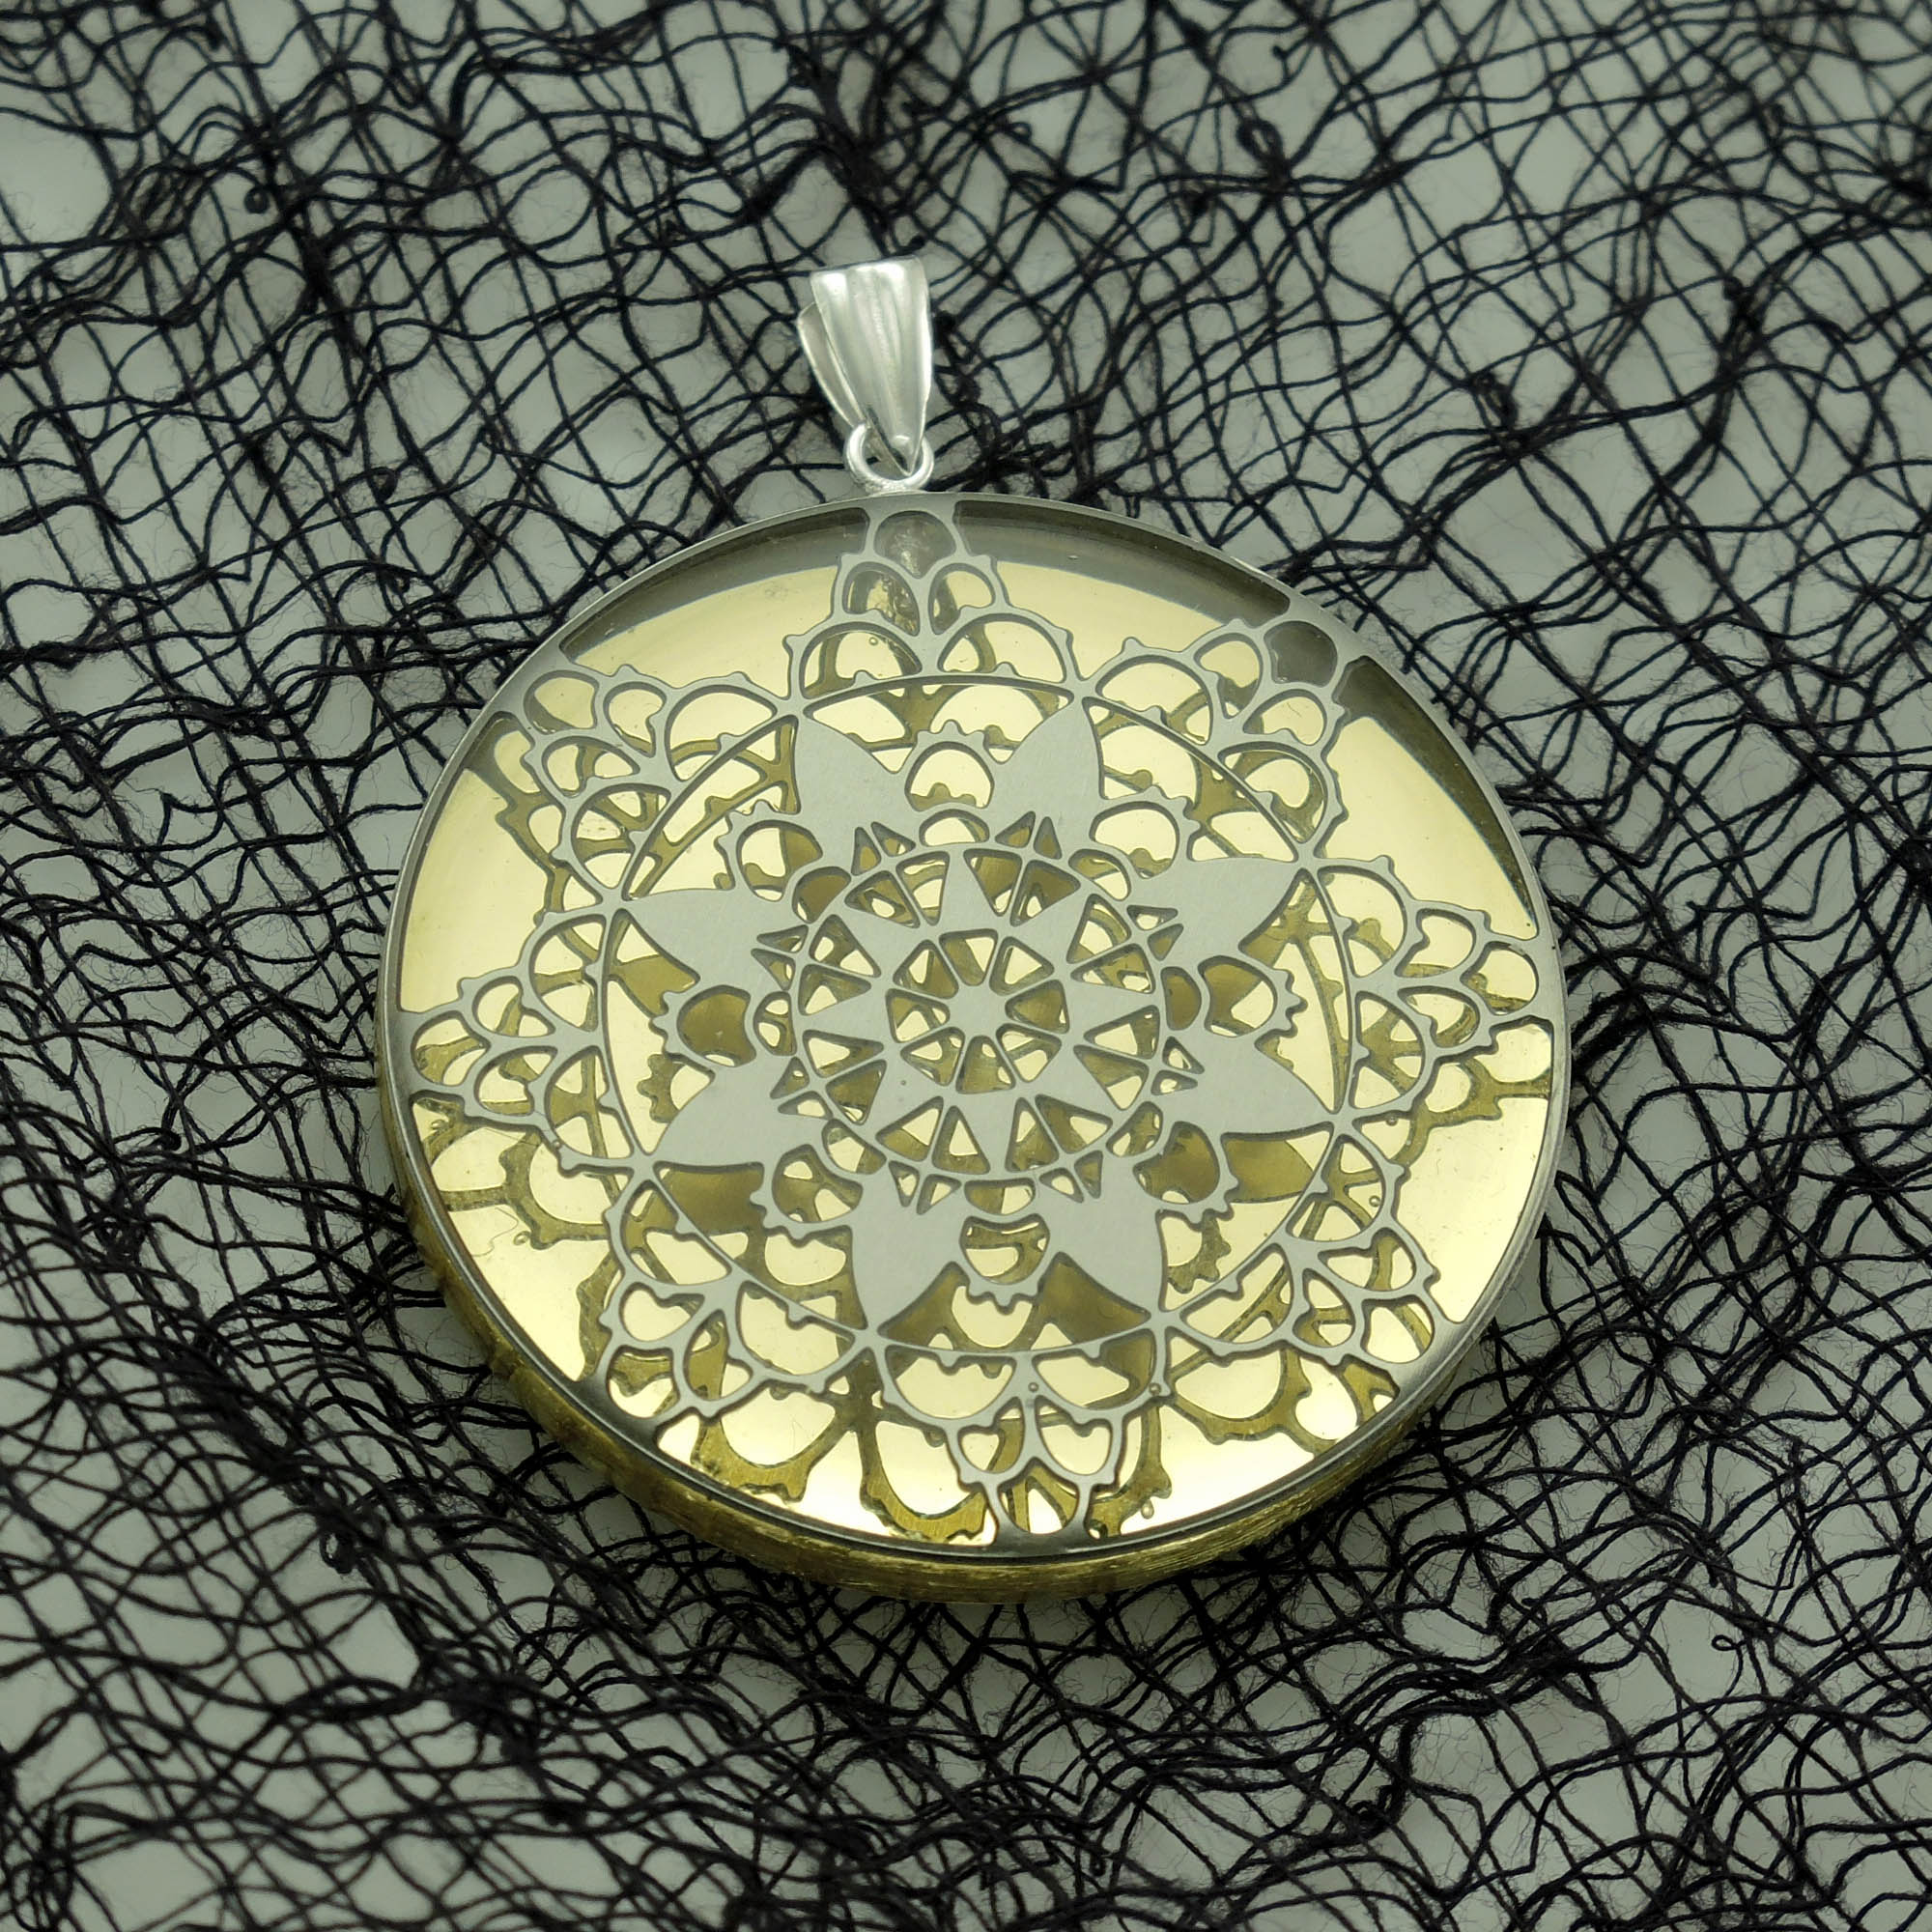 Stainless Steel Lace and Acrylic Pendant